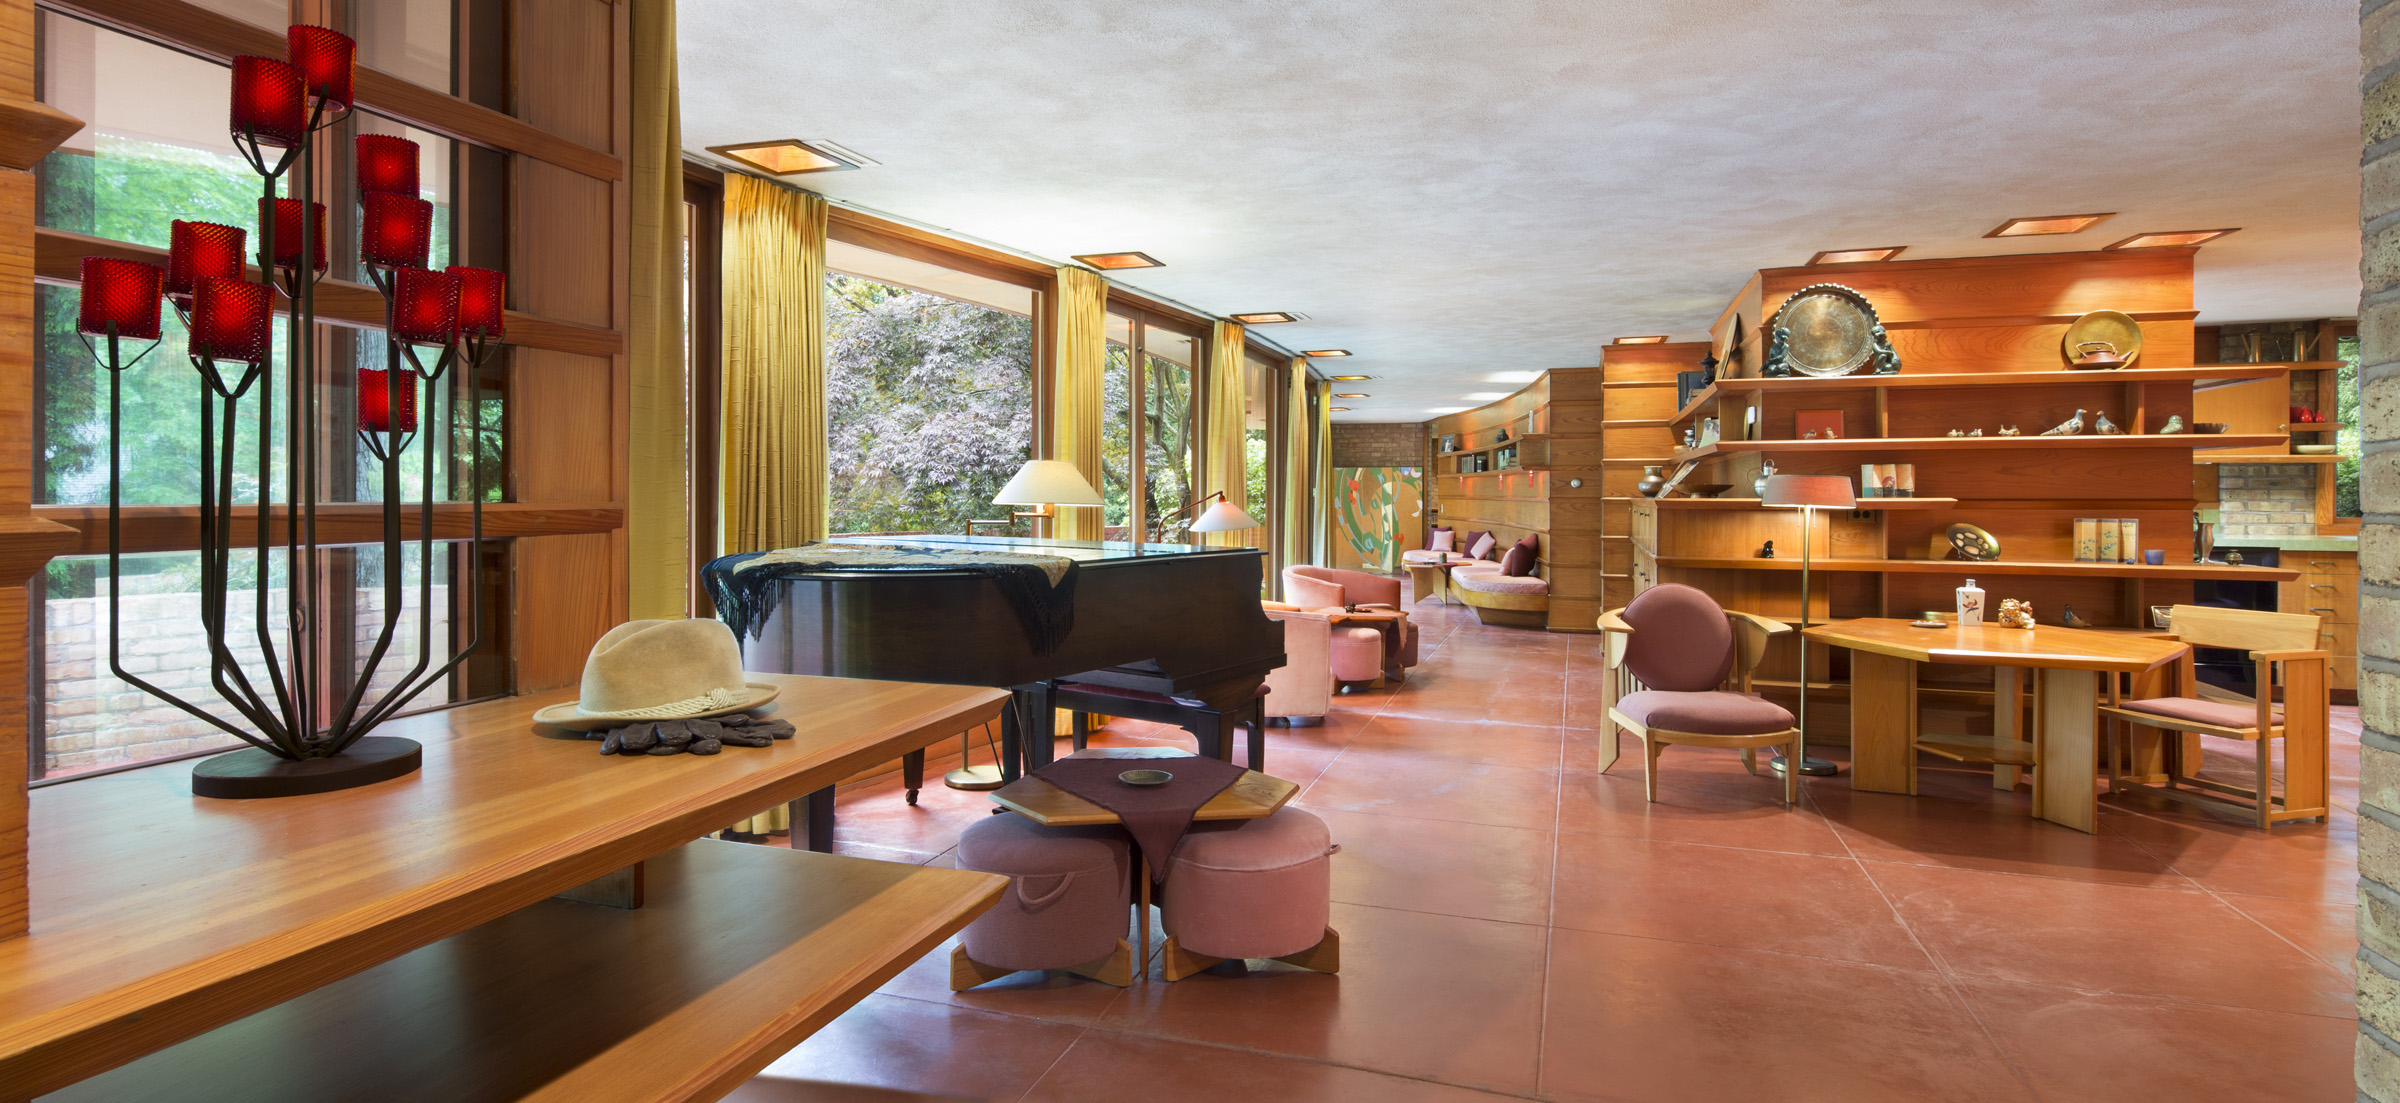 "The Laurent House: Frank Lloyd Wright's ""Little Gem"""